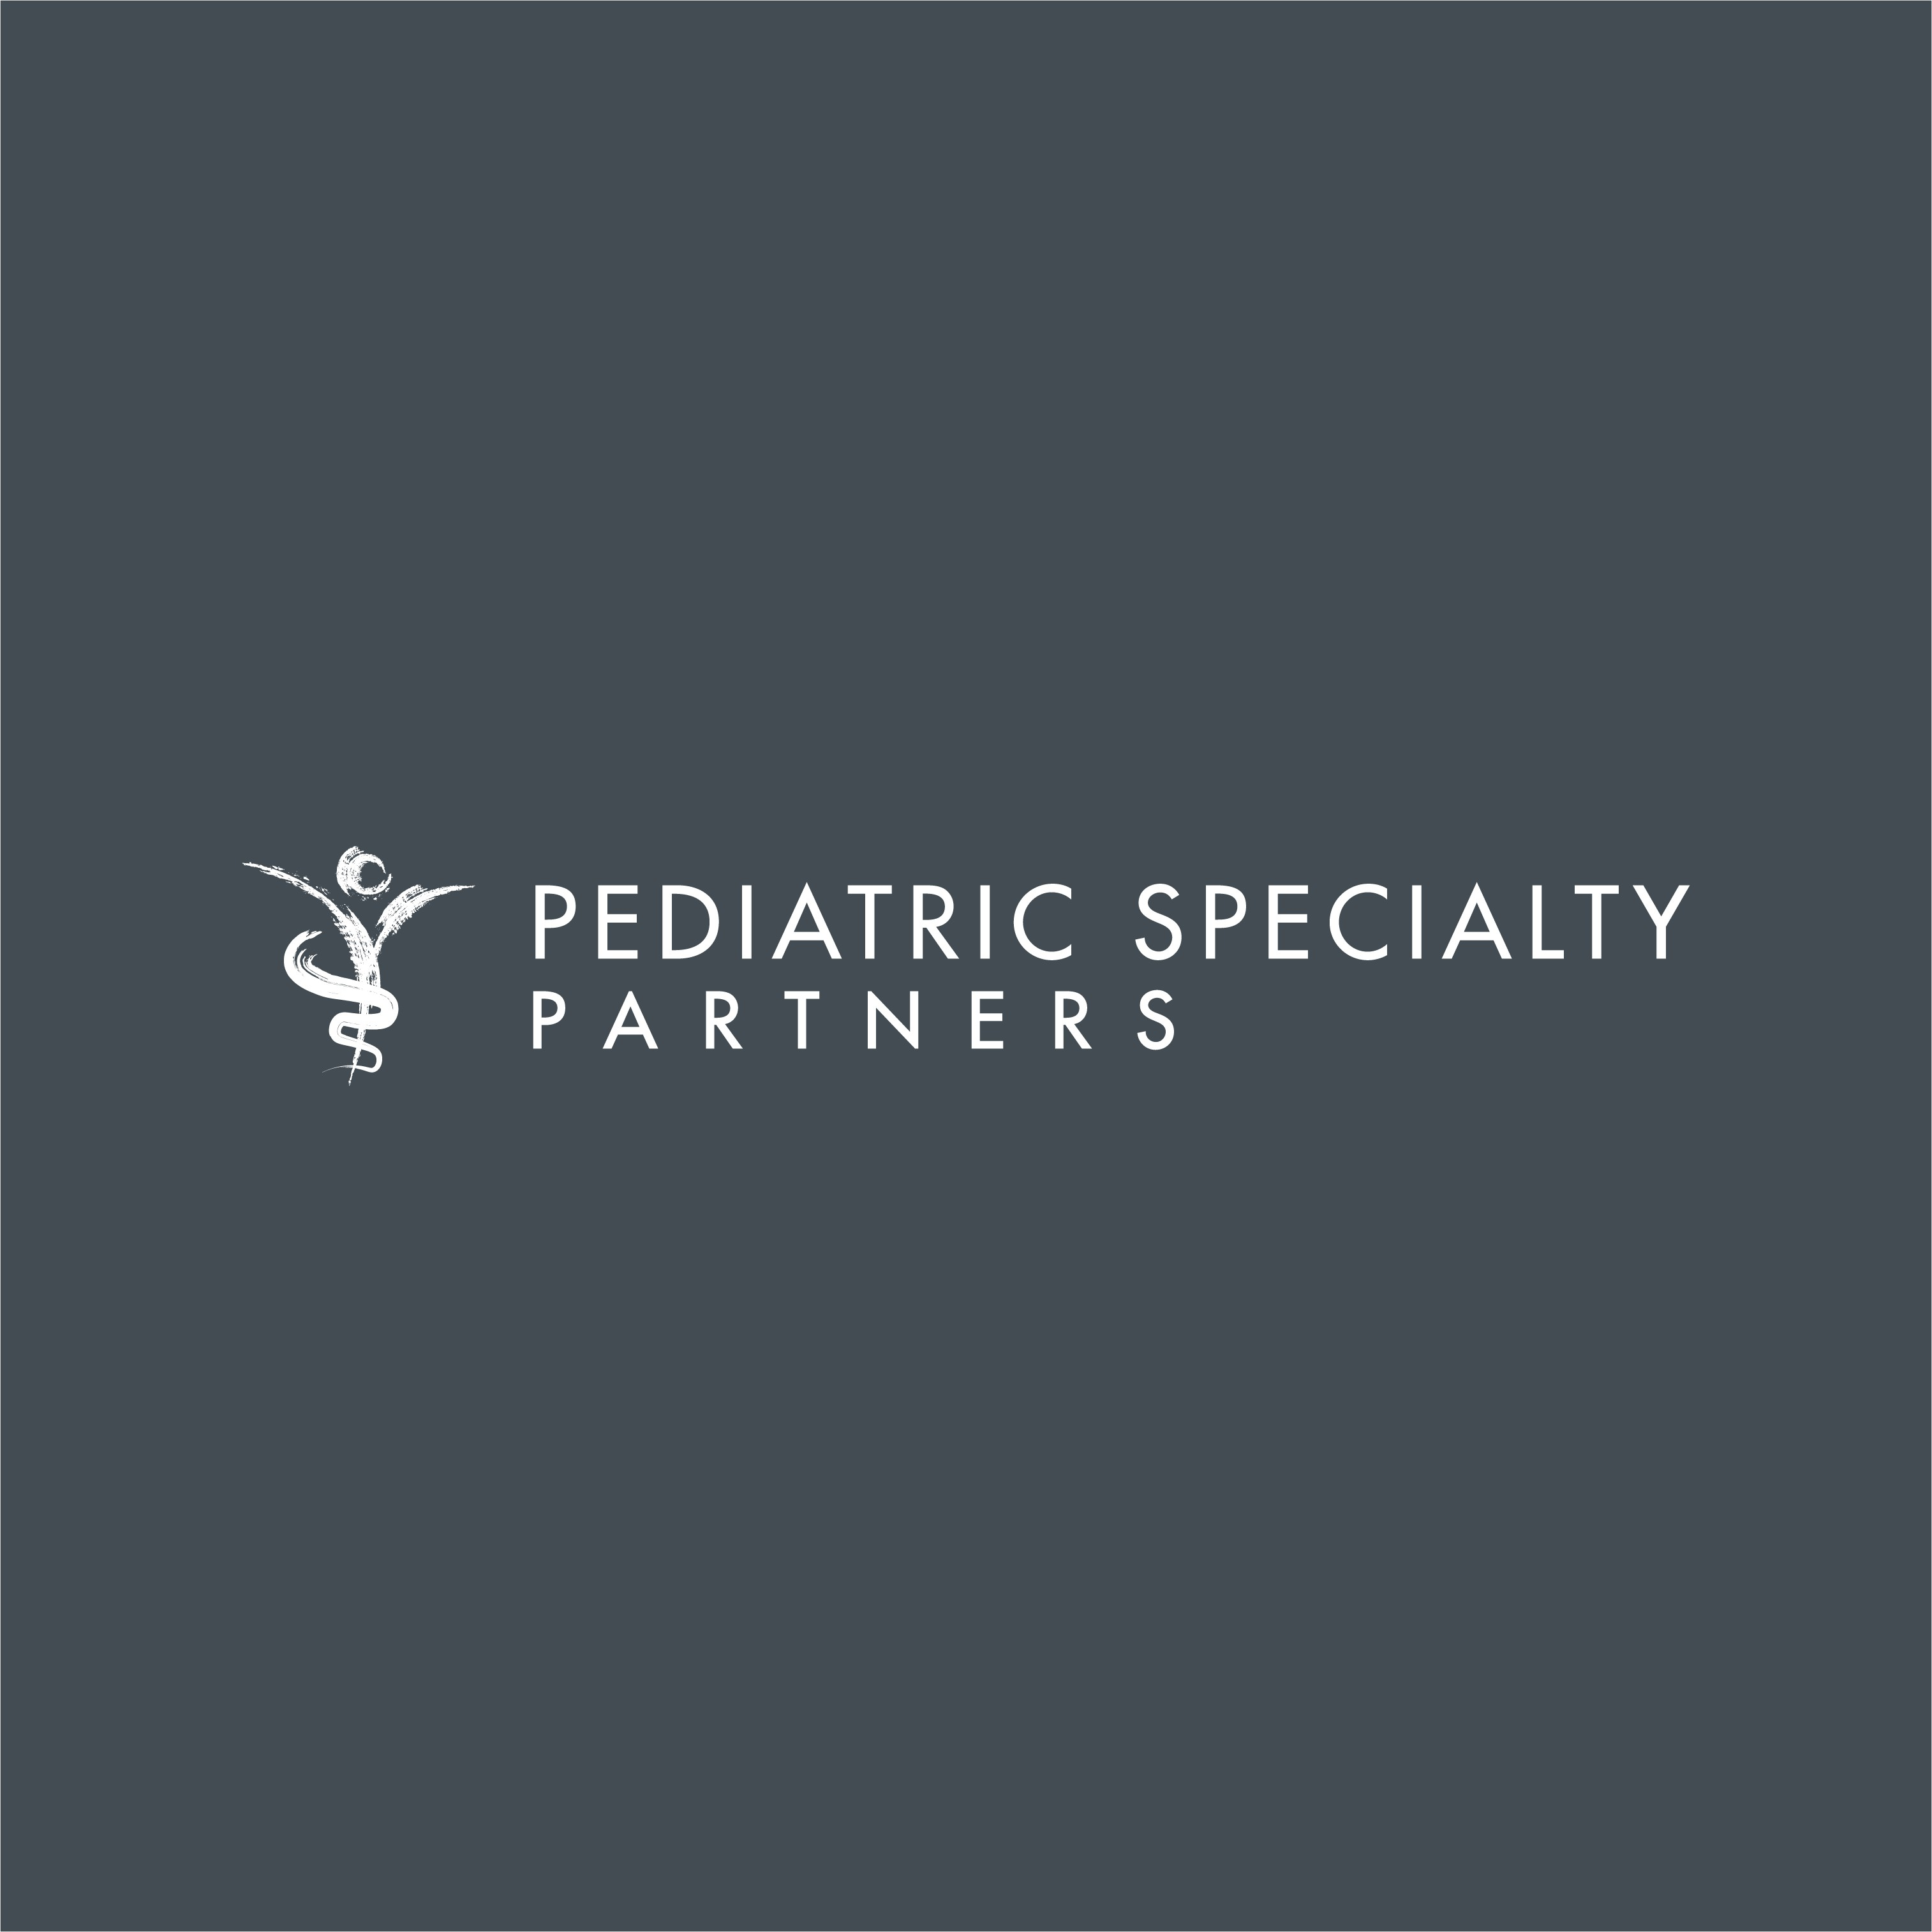 Design a whimsical but meaningful logo for Pediatric Partners